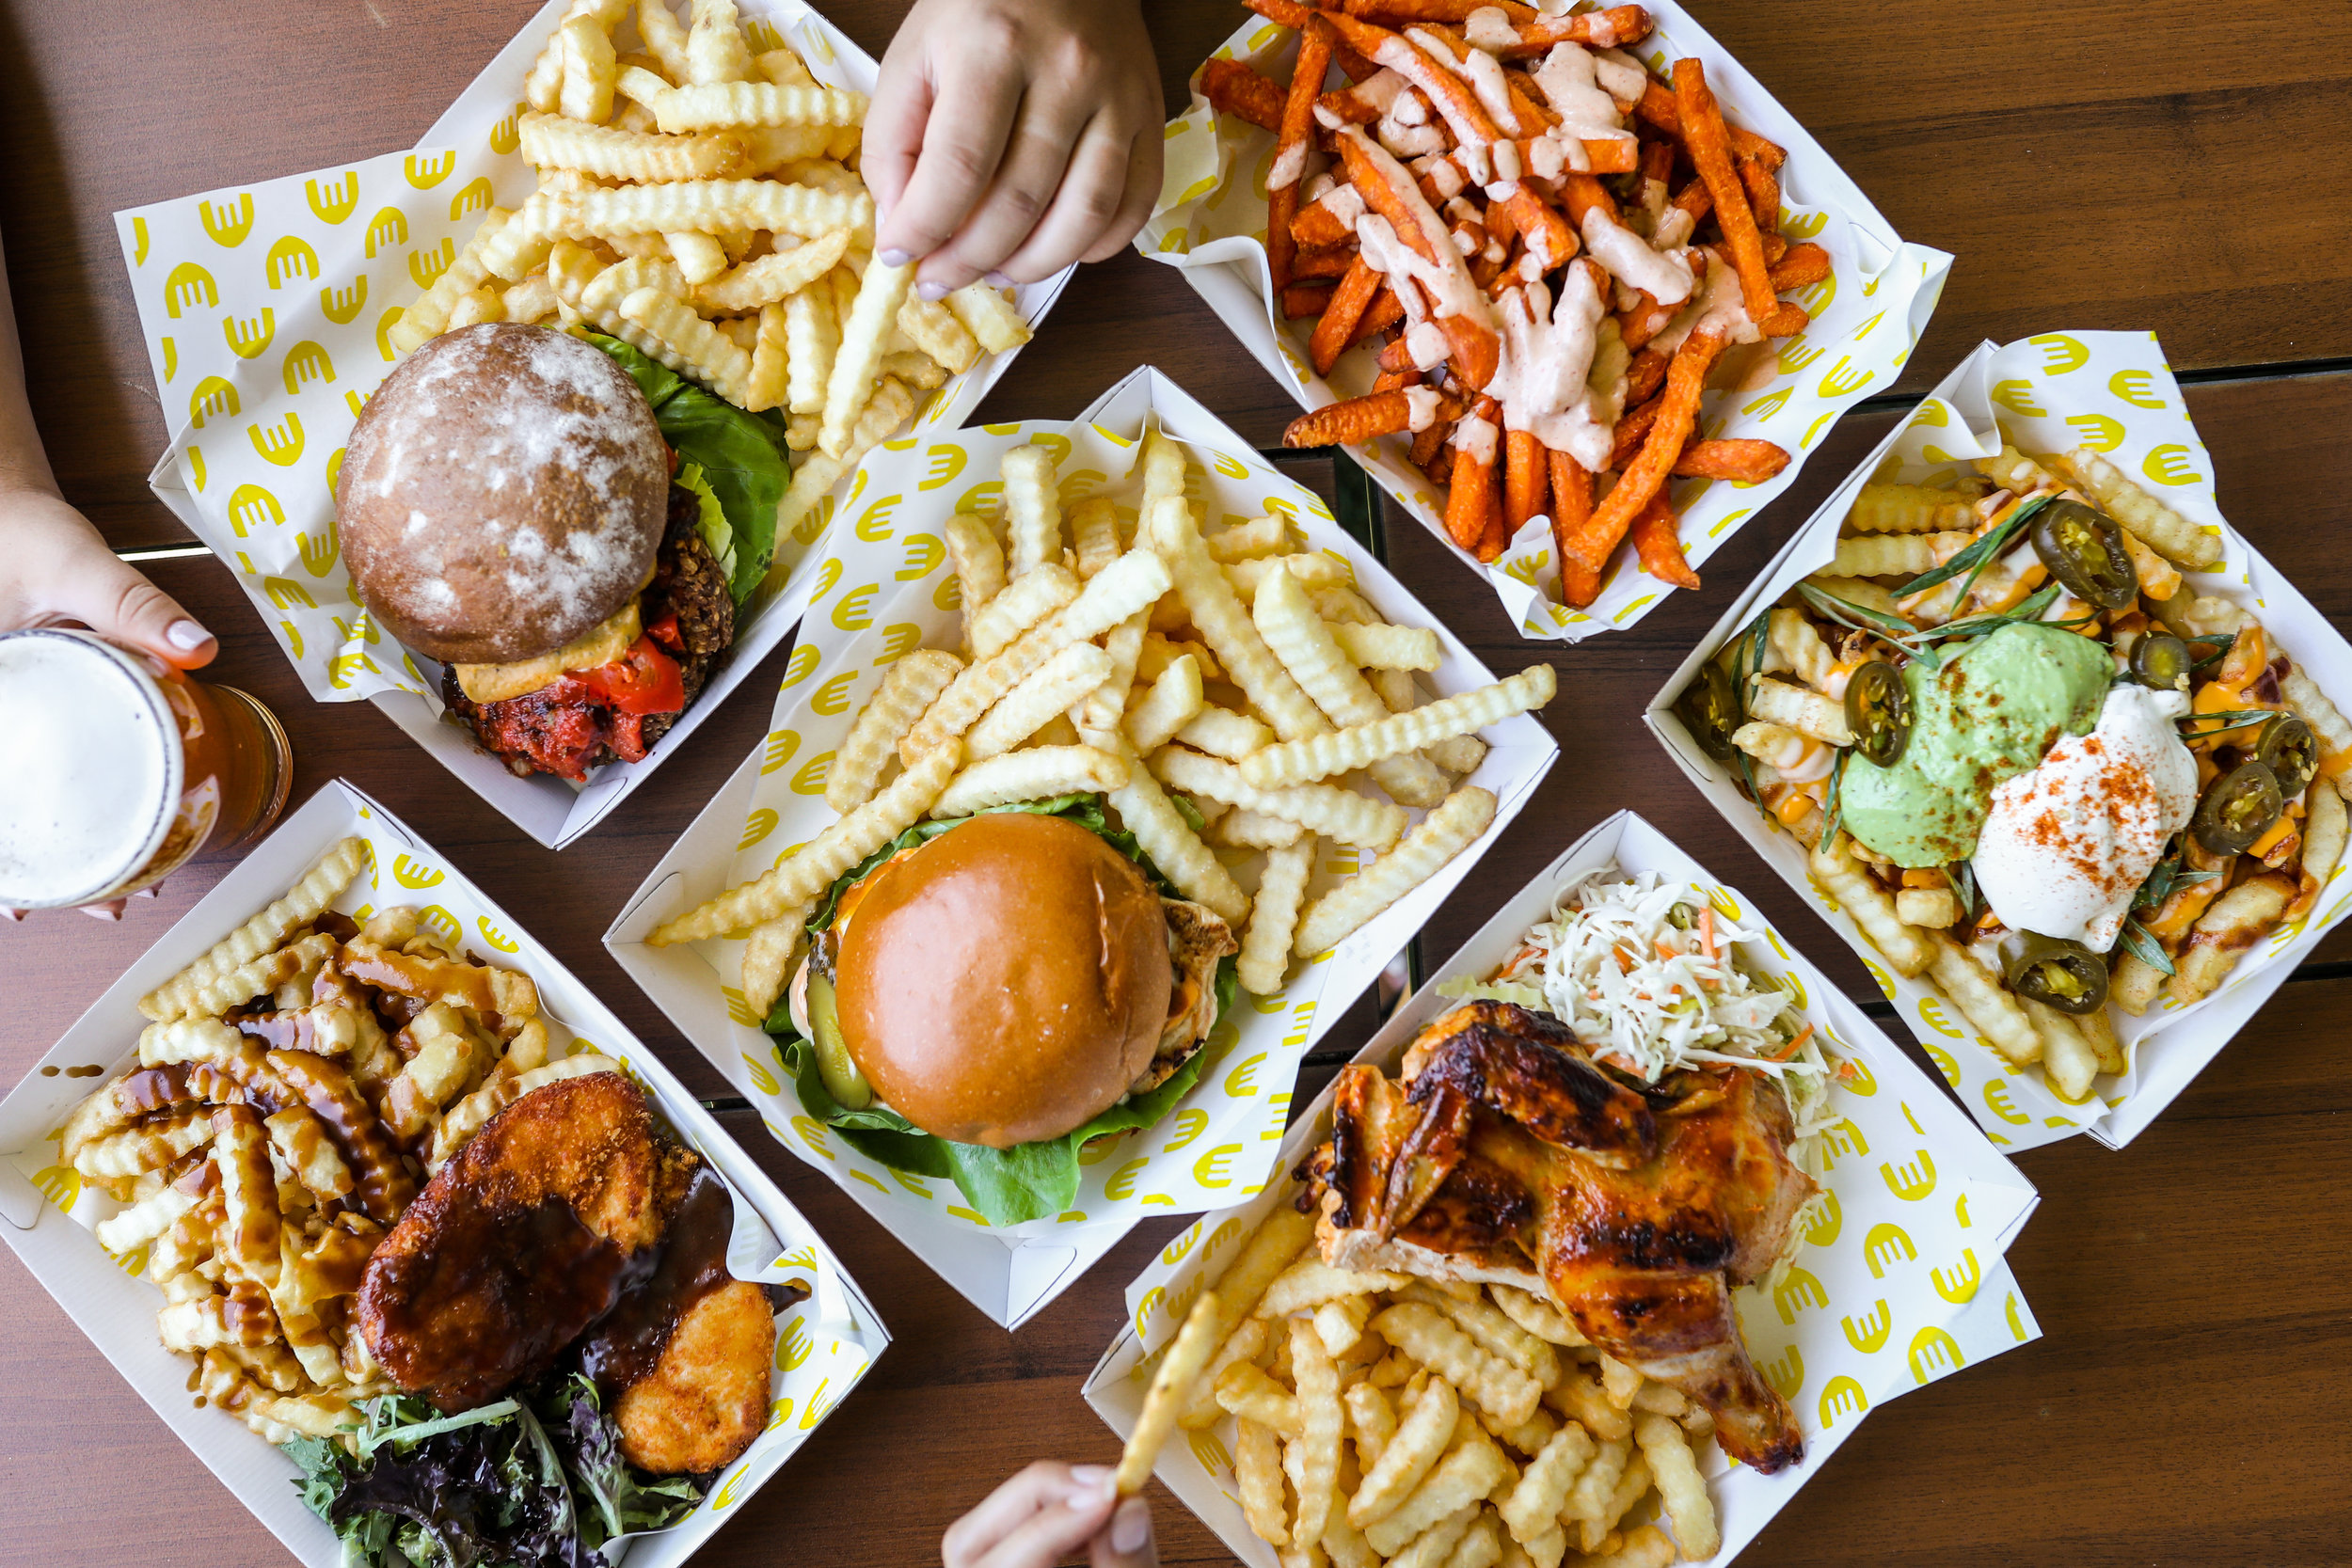 INTRODUCING: CLUCKY'S - CAMPUS FOOD